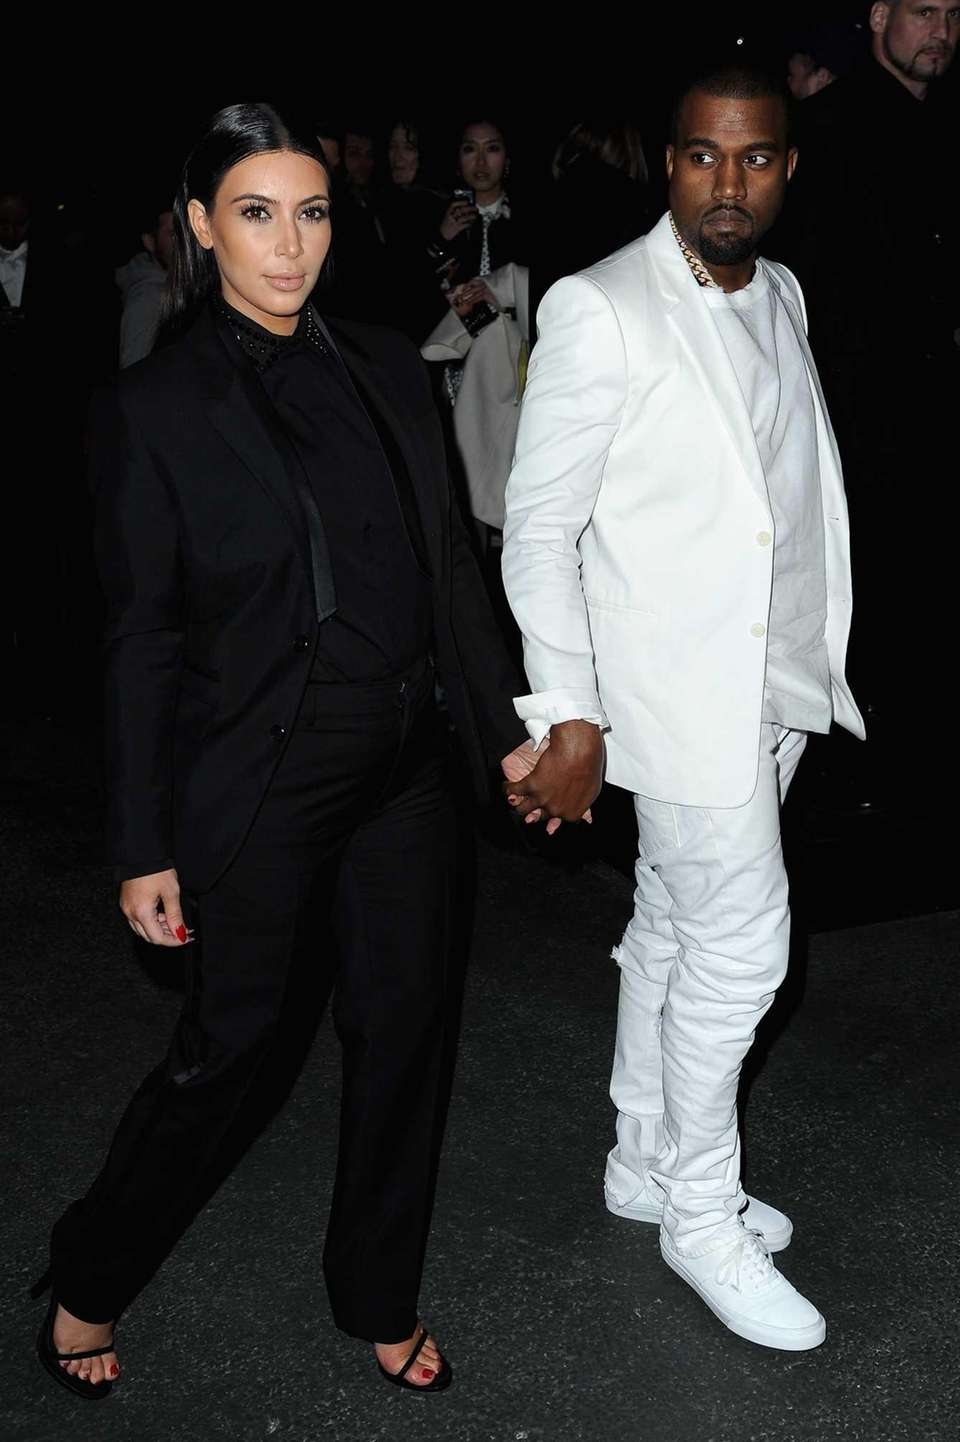 Kim Kardashian and Kanye West attend Givenchy Fall/Winter